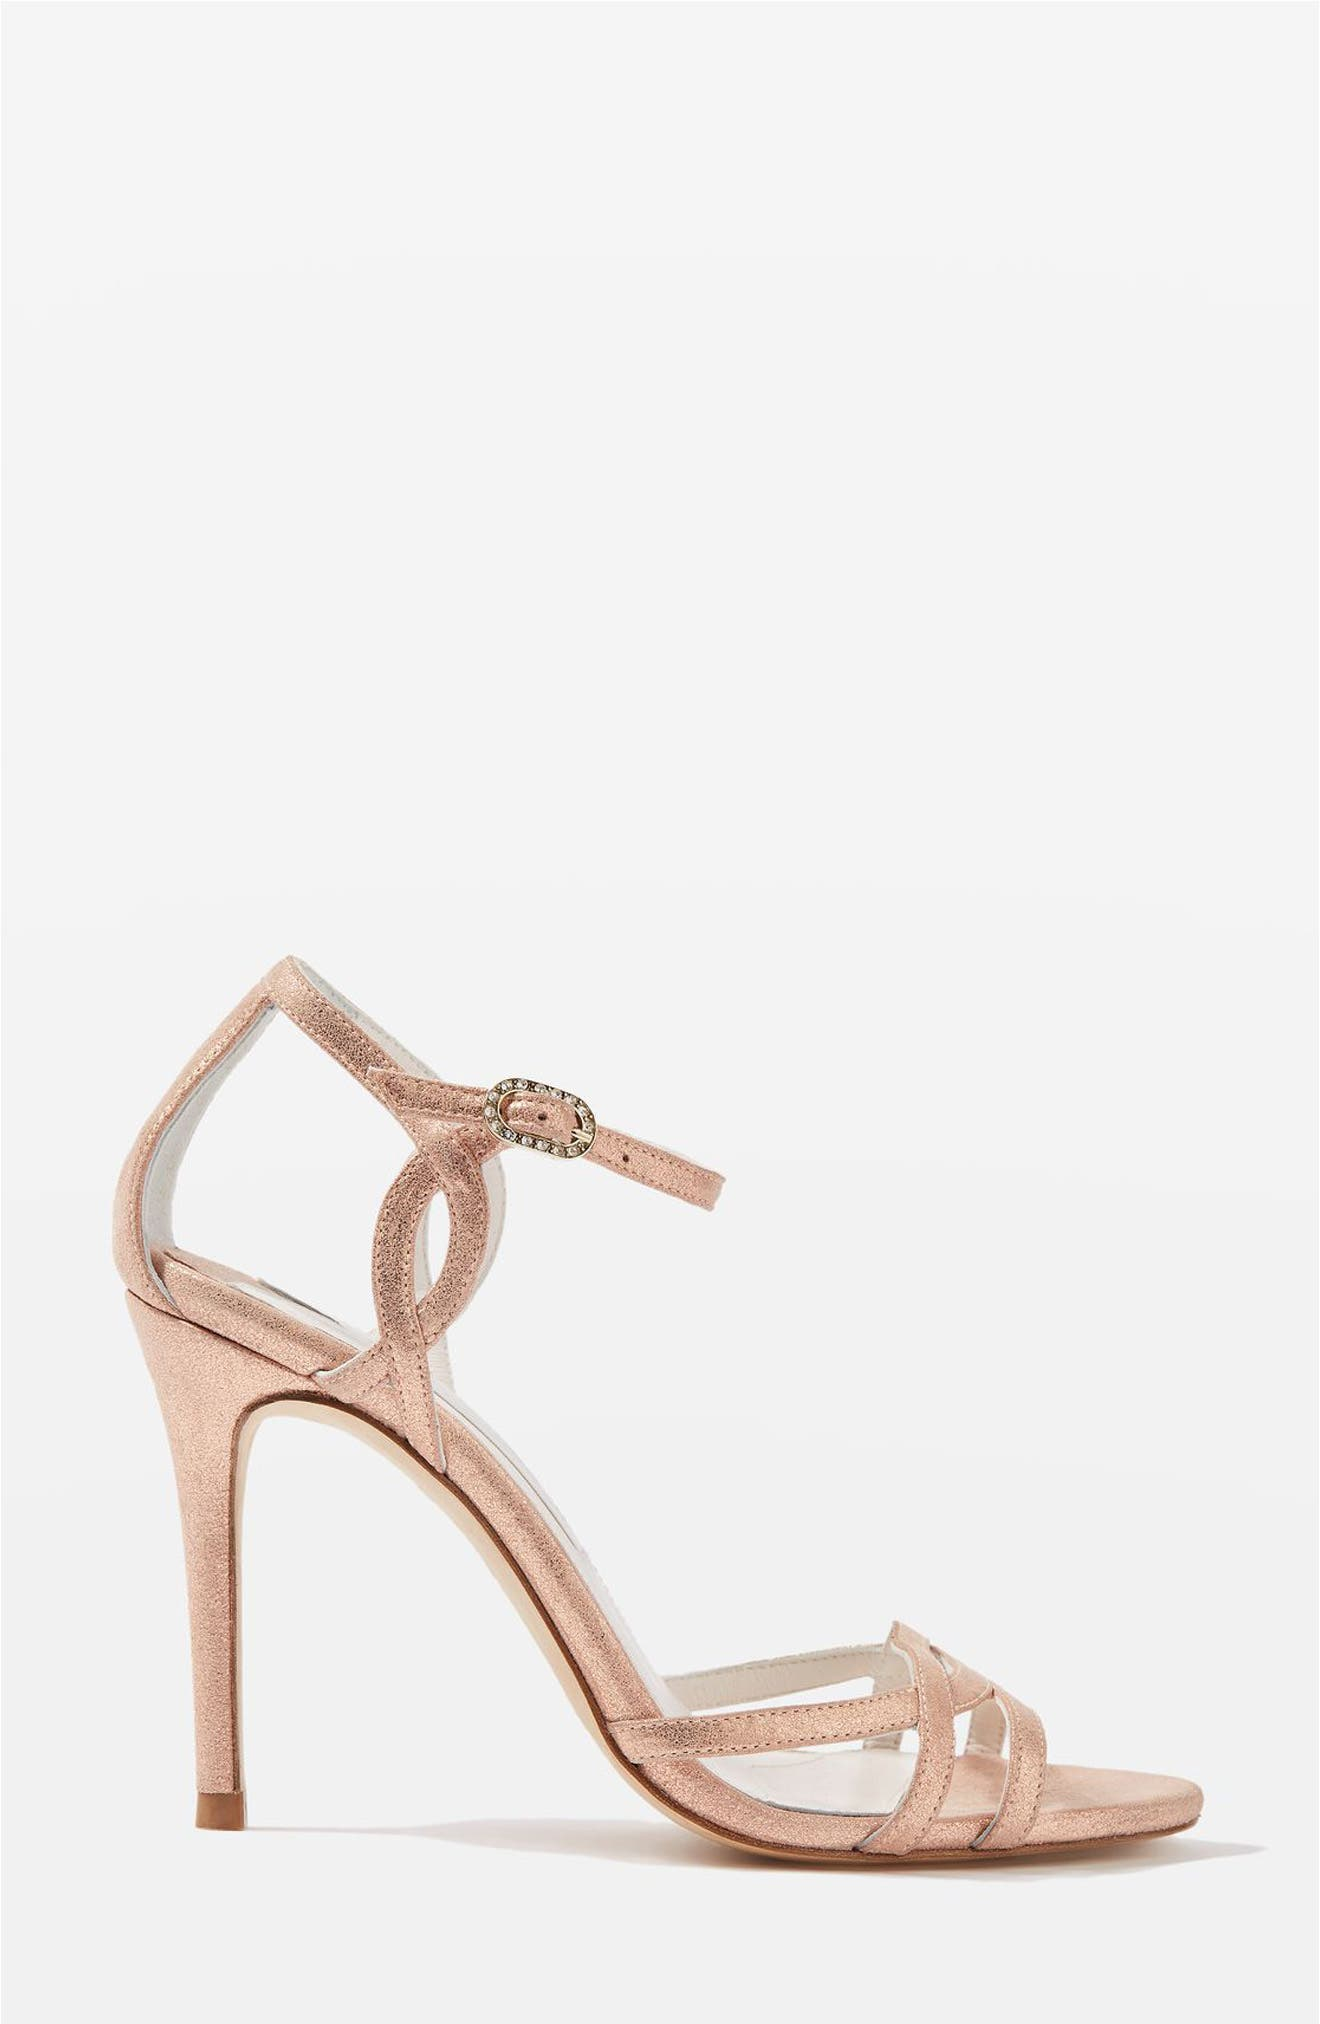 Topshop Bride Belle Strappy Sandals (Women)